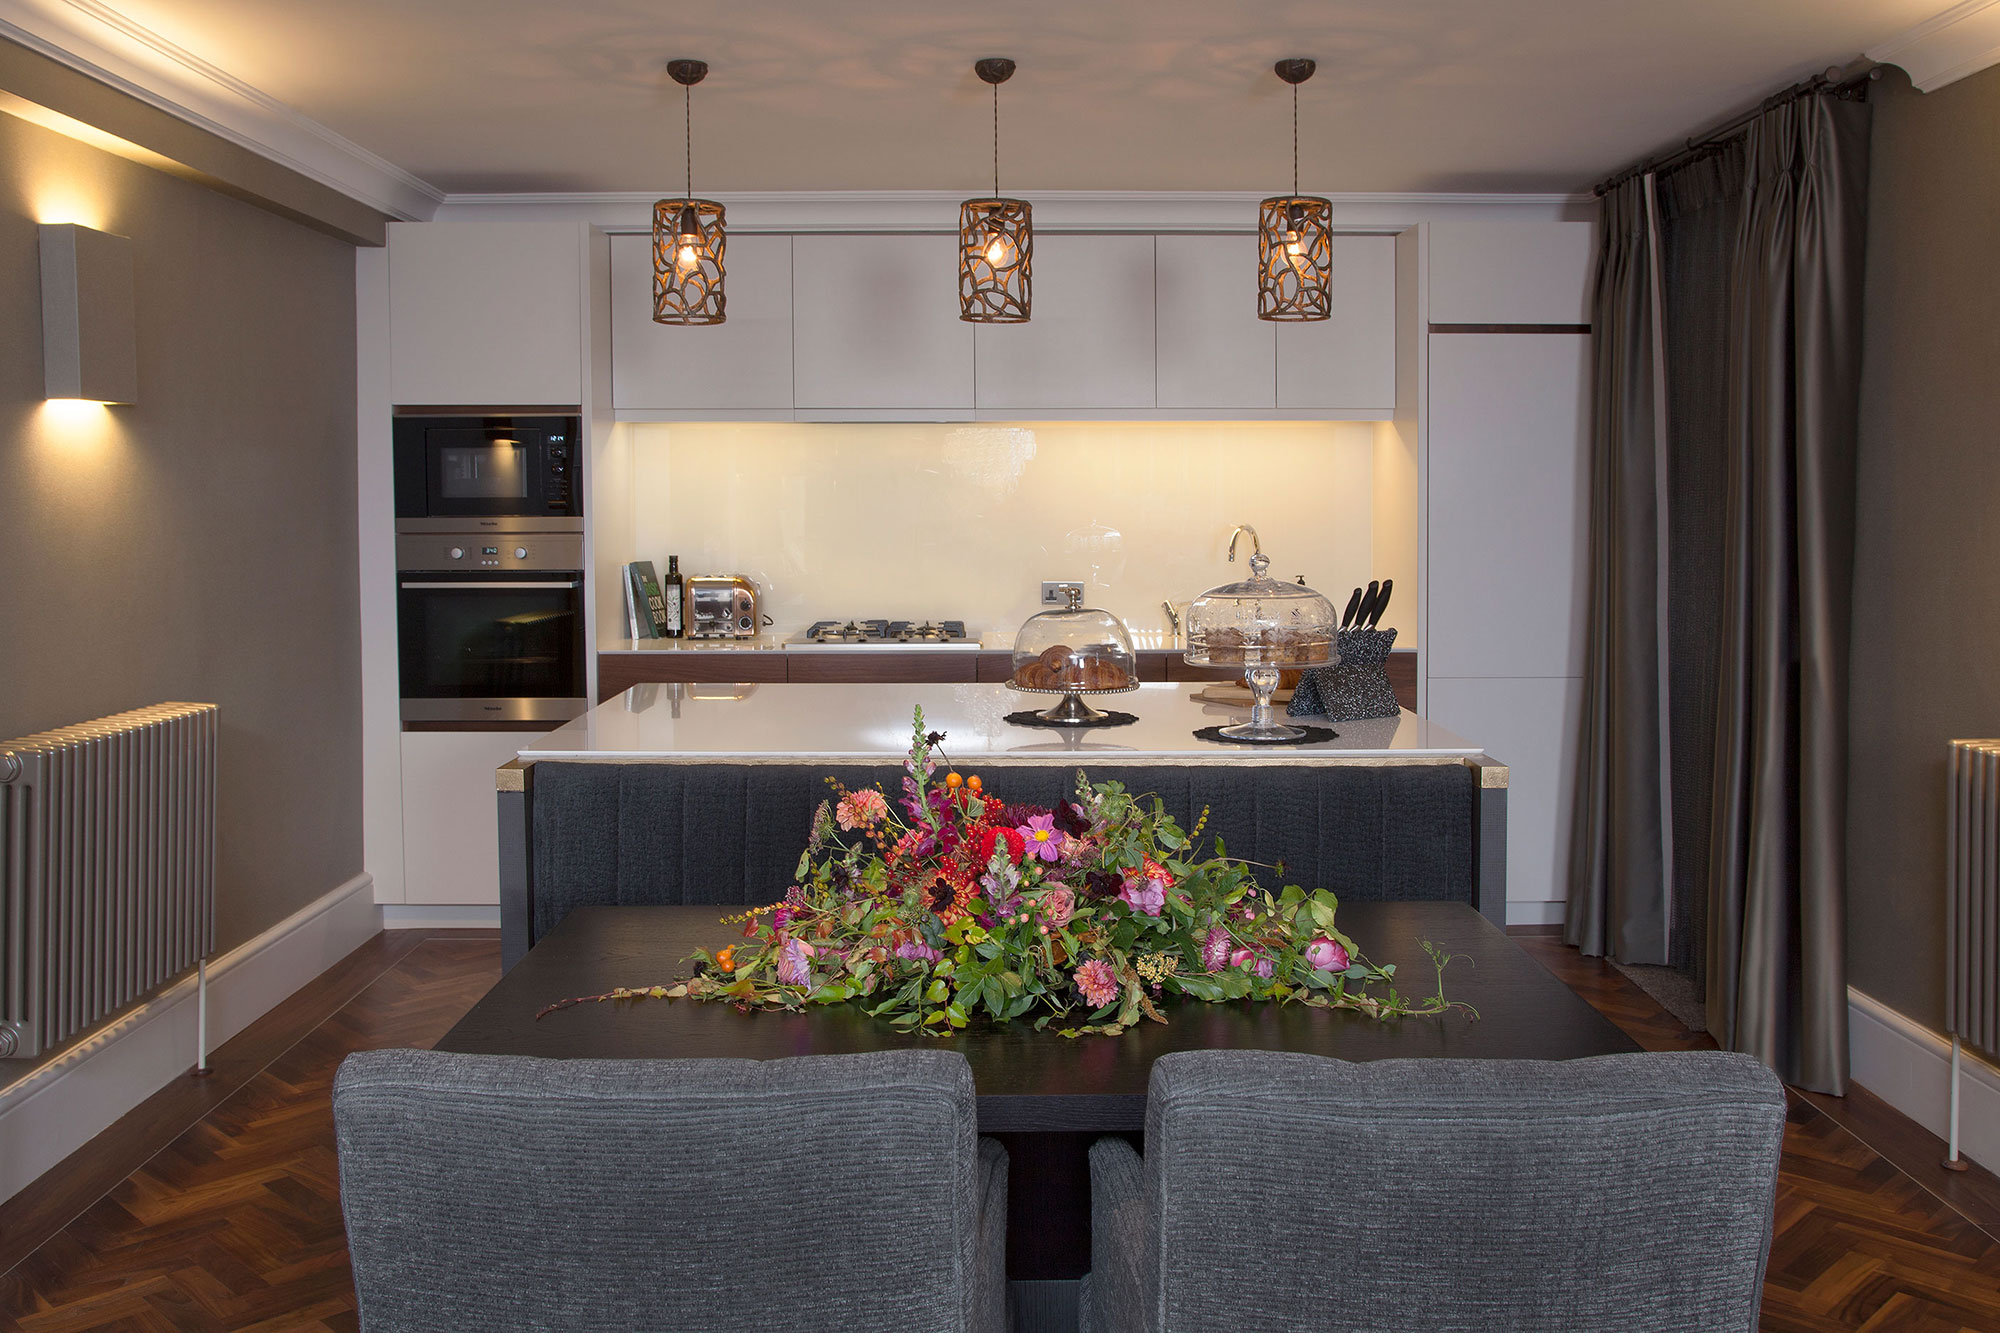 kitchen island with built-in banquette seating and pendant lights above kitchen island